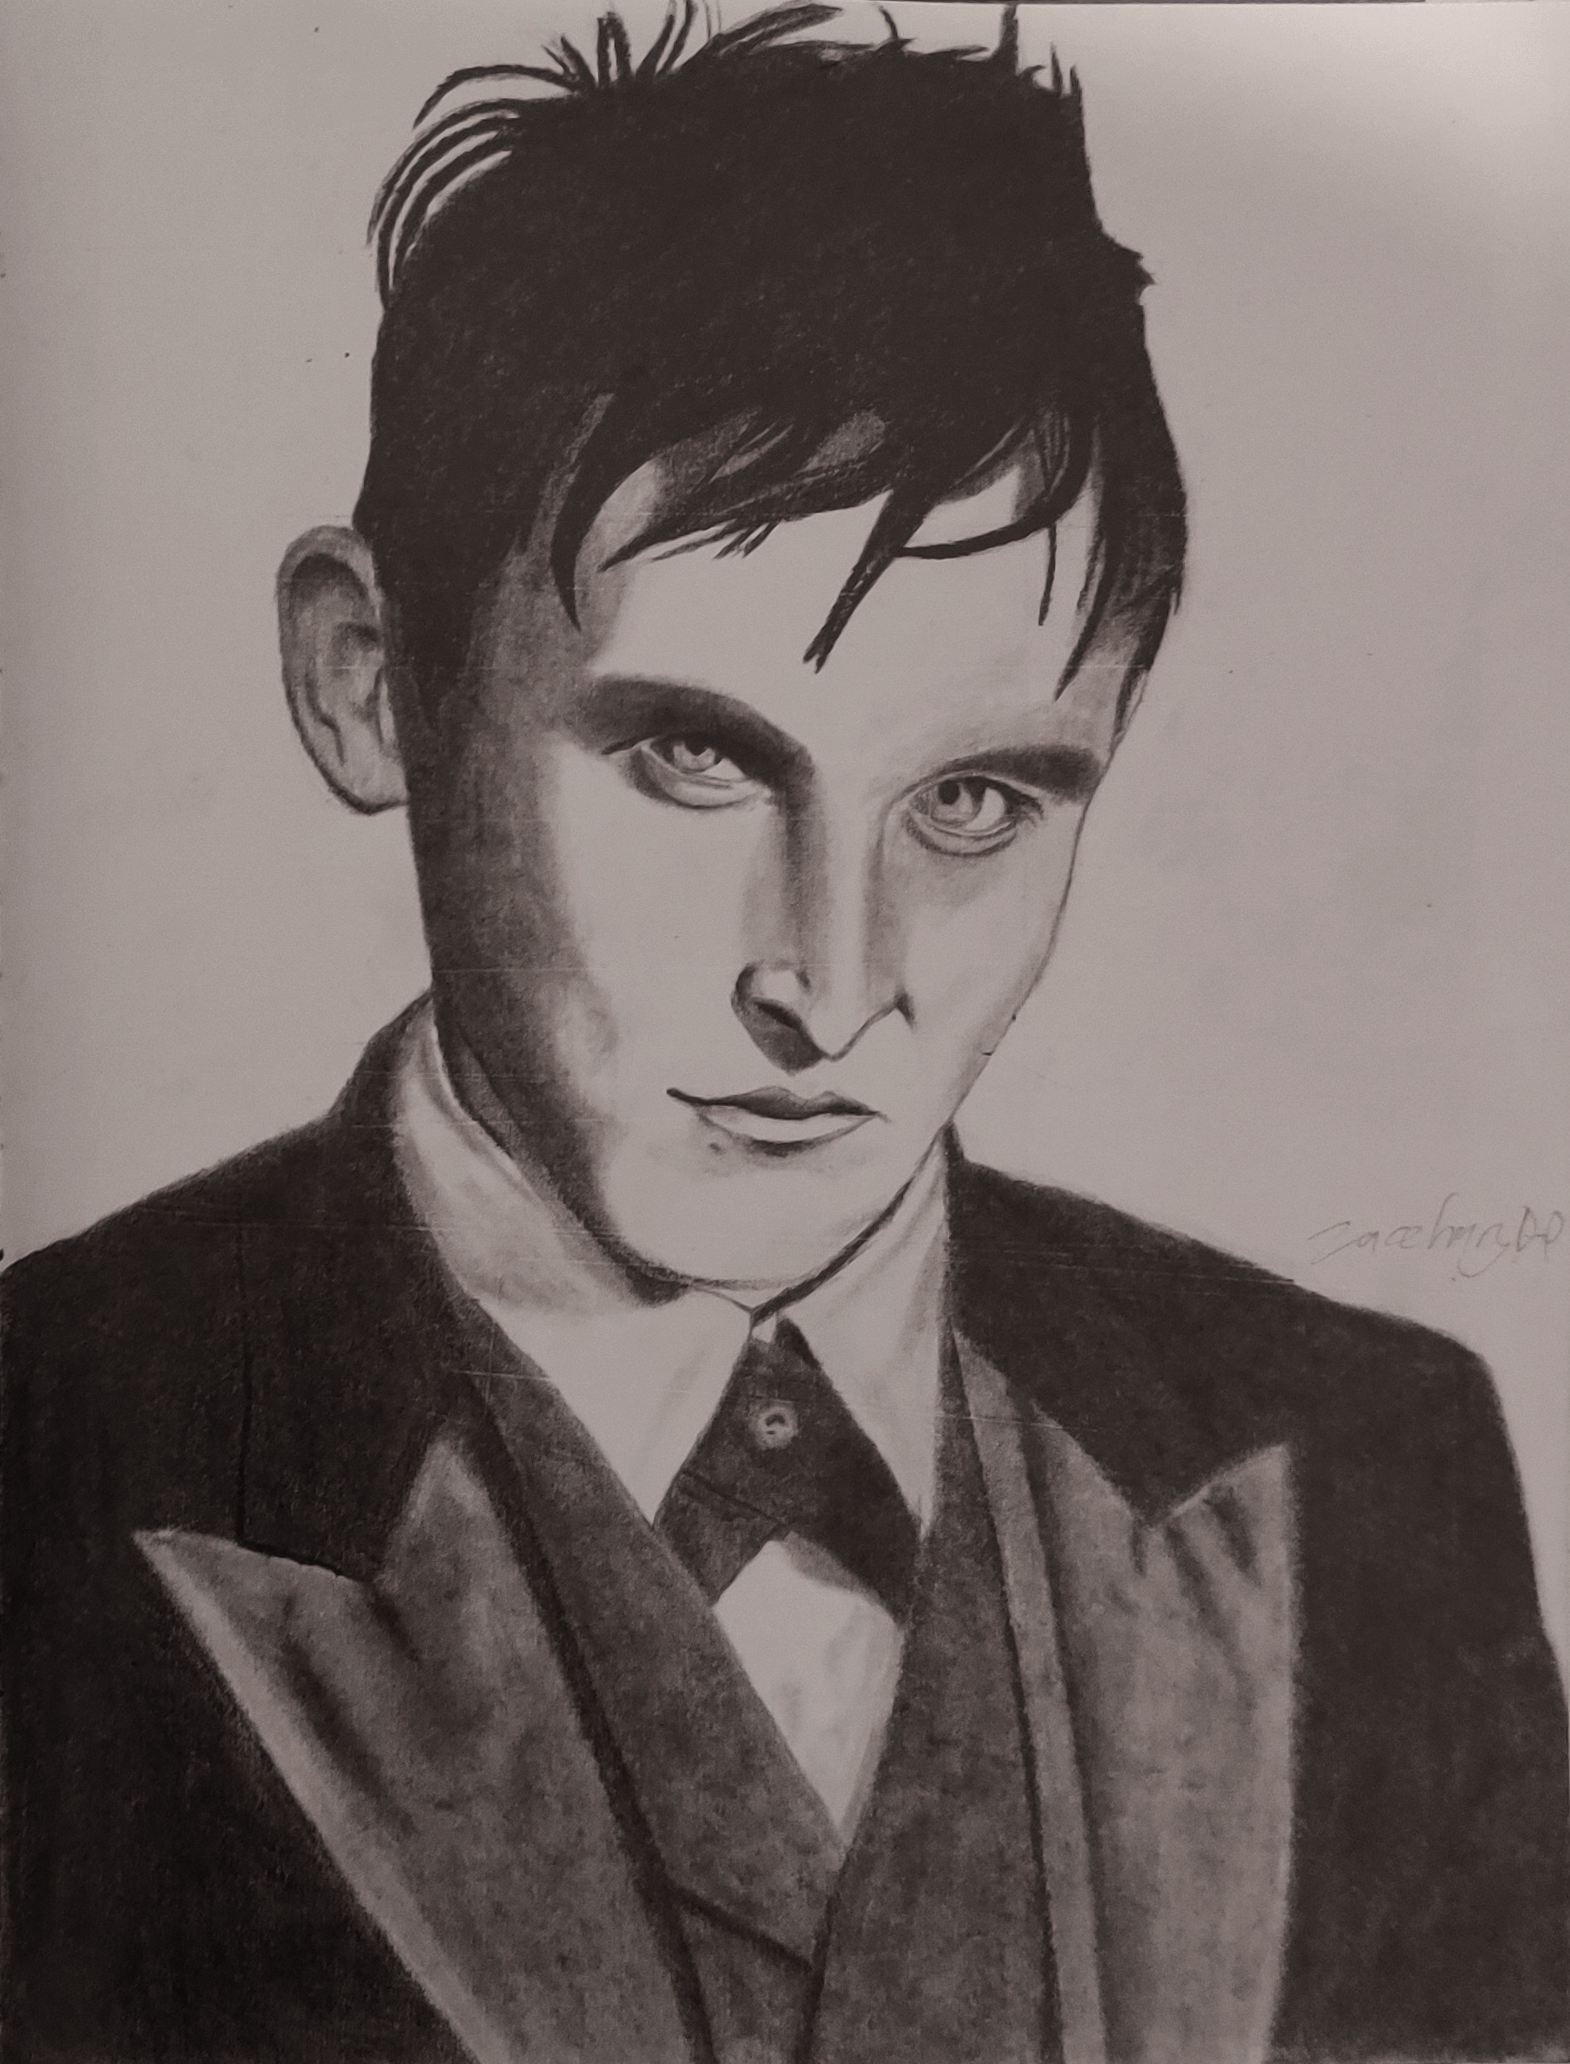 A pencil portrait of Penguin from the TV show 'Gotham'.